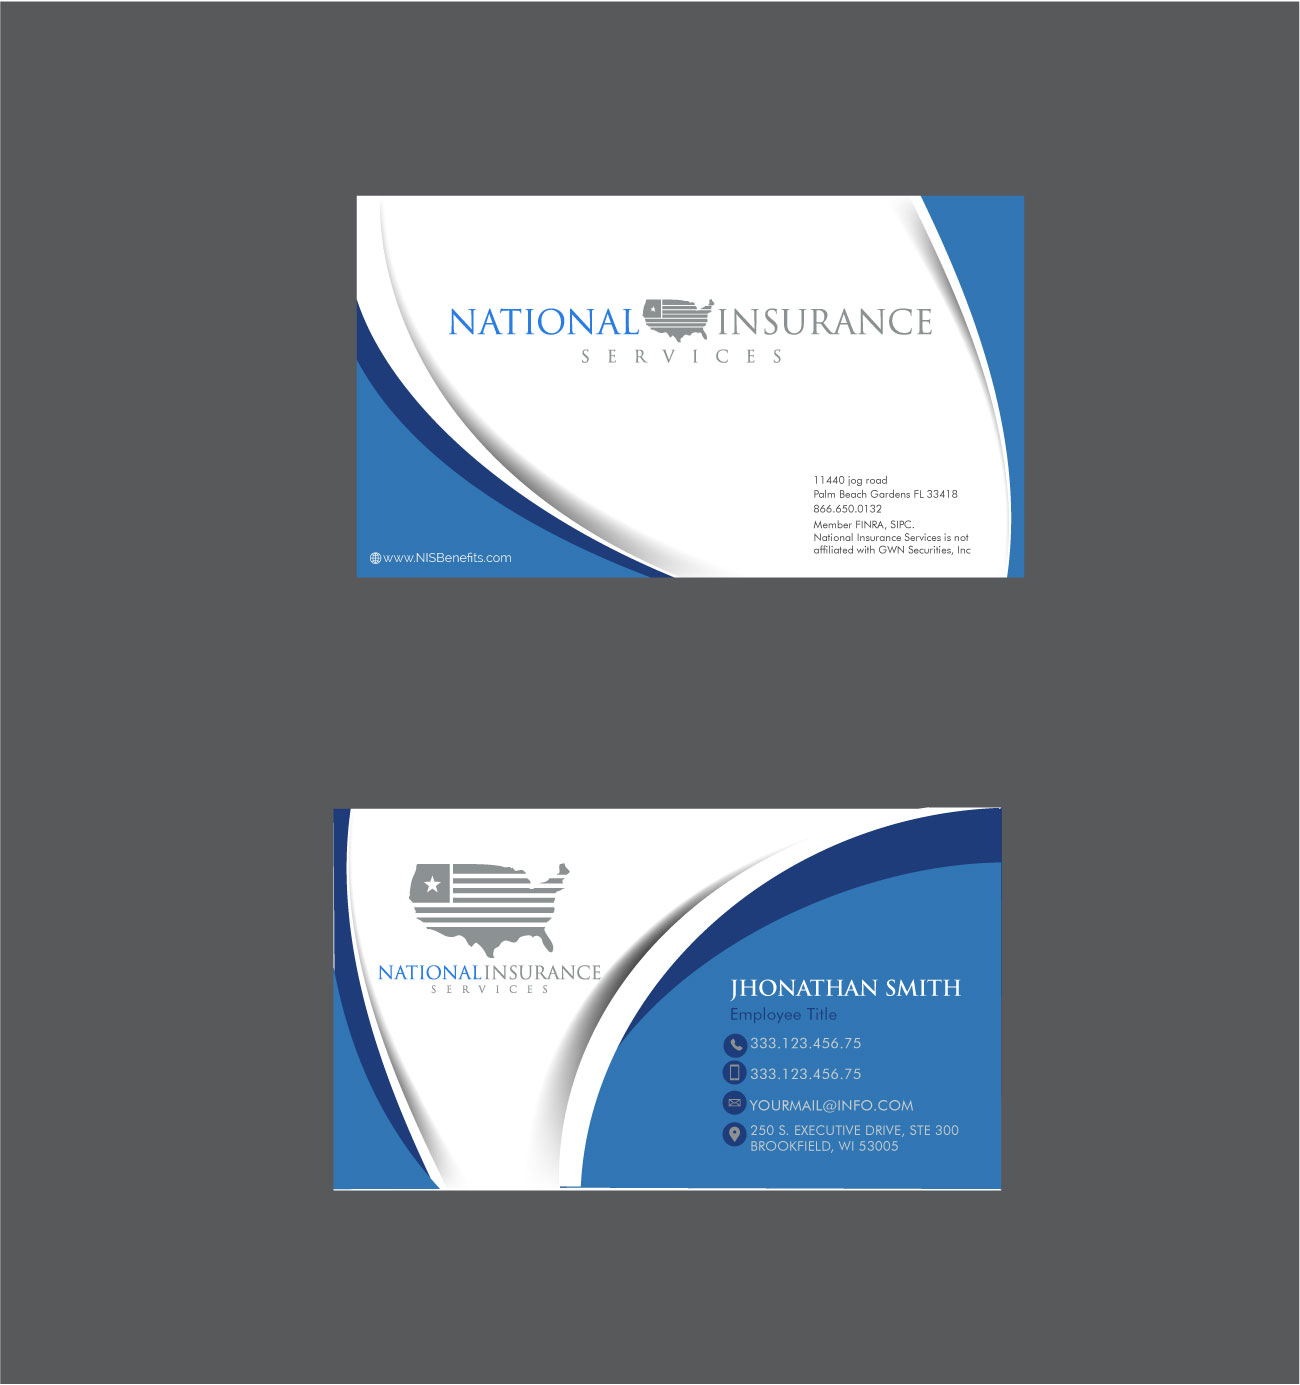 Serious professional business card design for national insurance business card design by designs craft for business cards both co branded and single magicingreecefo Image collections